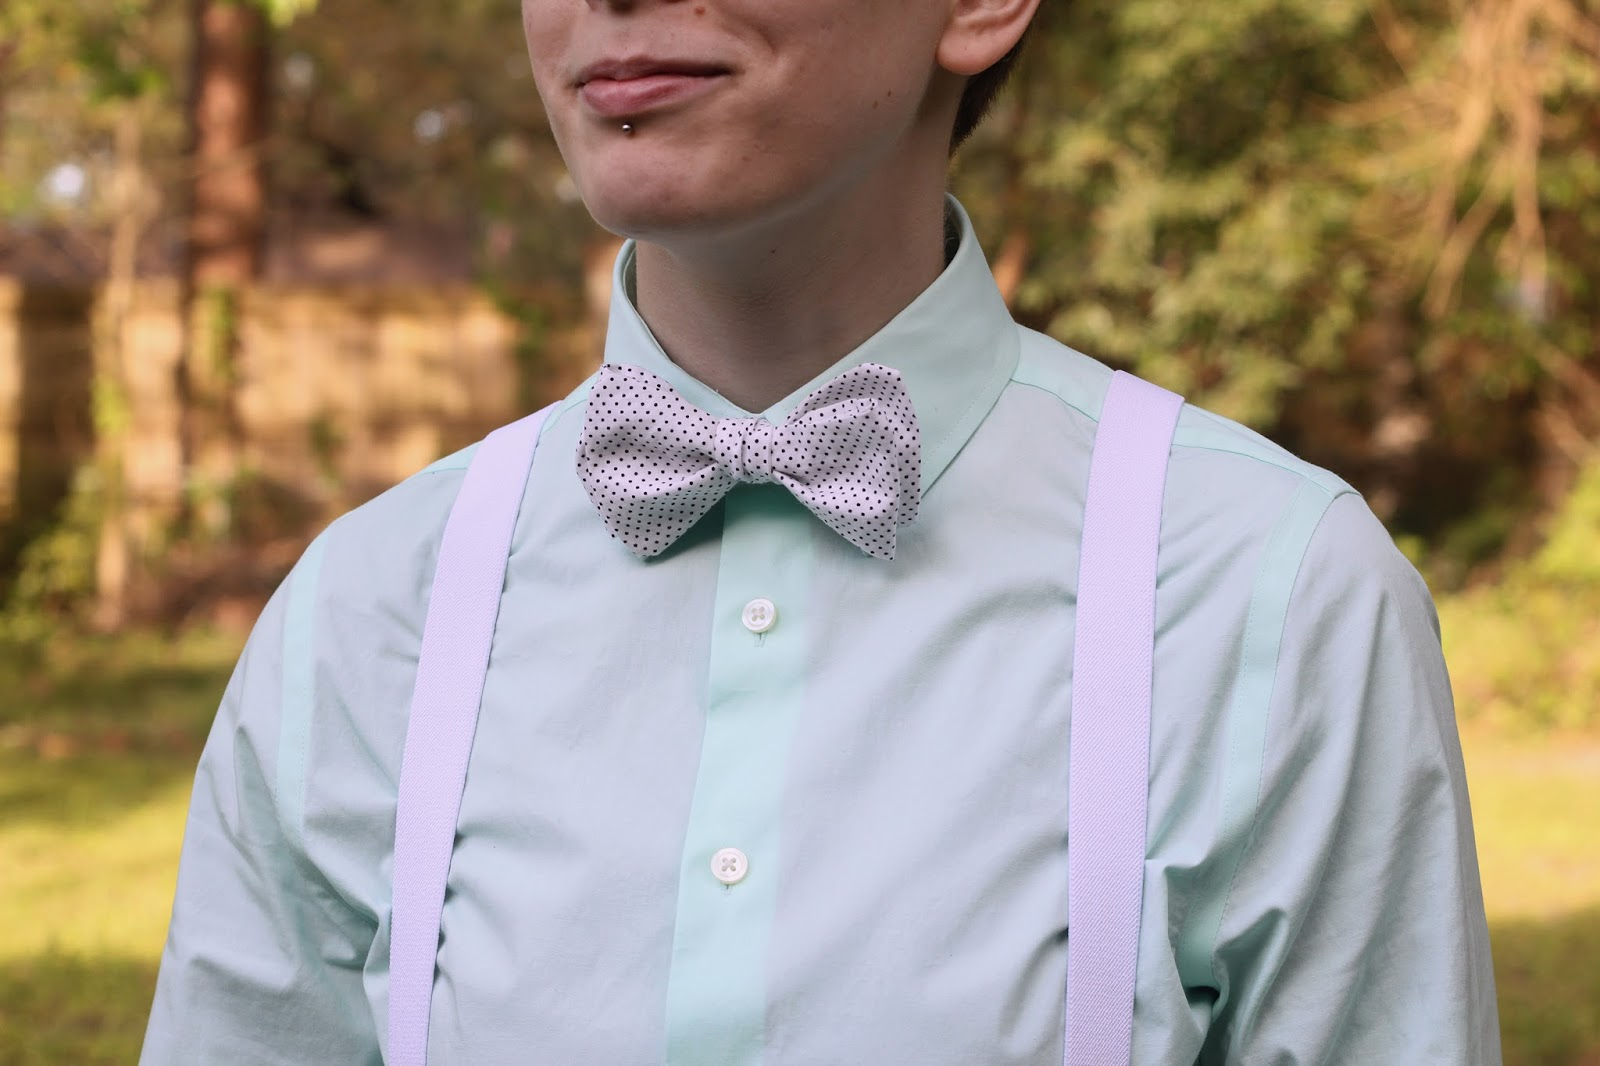 Handmade Bow Tie: Mint green & white